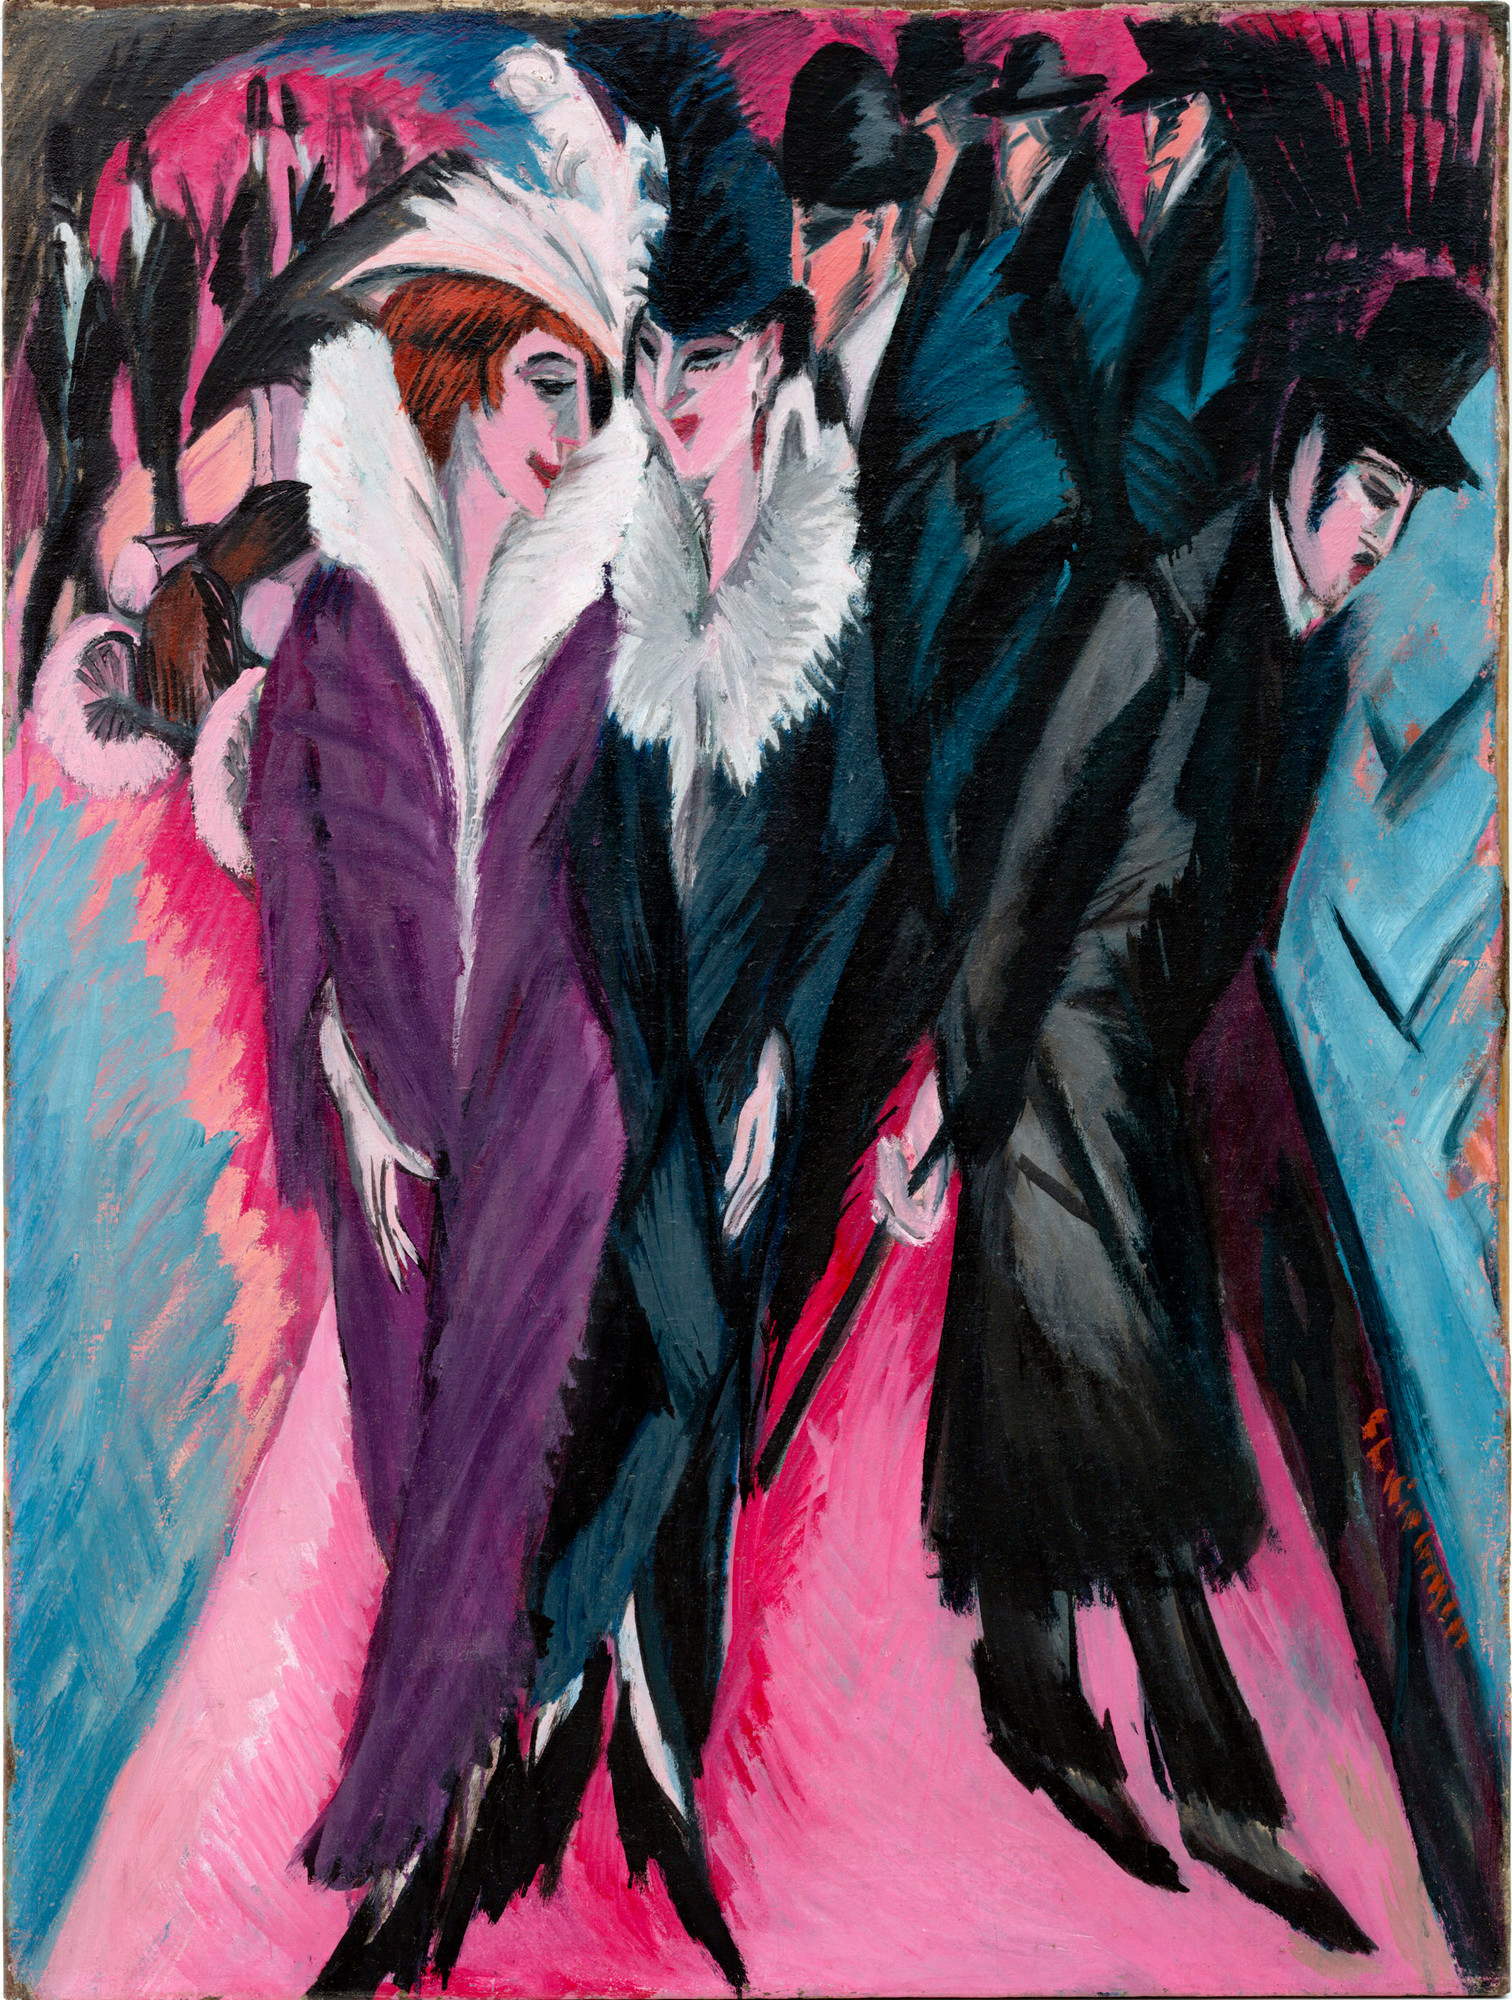 Ernst Ludwig Kirchner. Street, Berlin (Straße, Berlin). 1913. Oil on canvas, 47 1/2 × 35 7/8″ (120.6 × 91.1 cm). The Museum of Modern Art. Purchase. © 2008 Ingeborg and Dr. Wolfgang Henze-Ketterer, Wichtrach/Bern